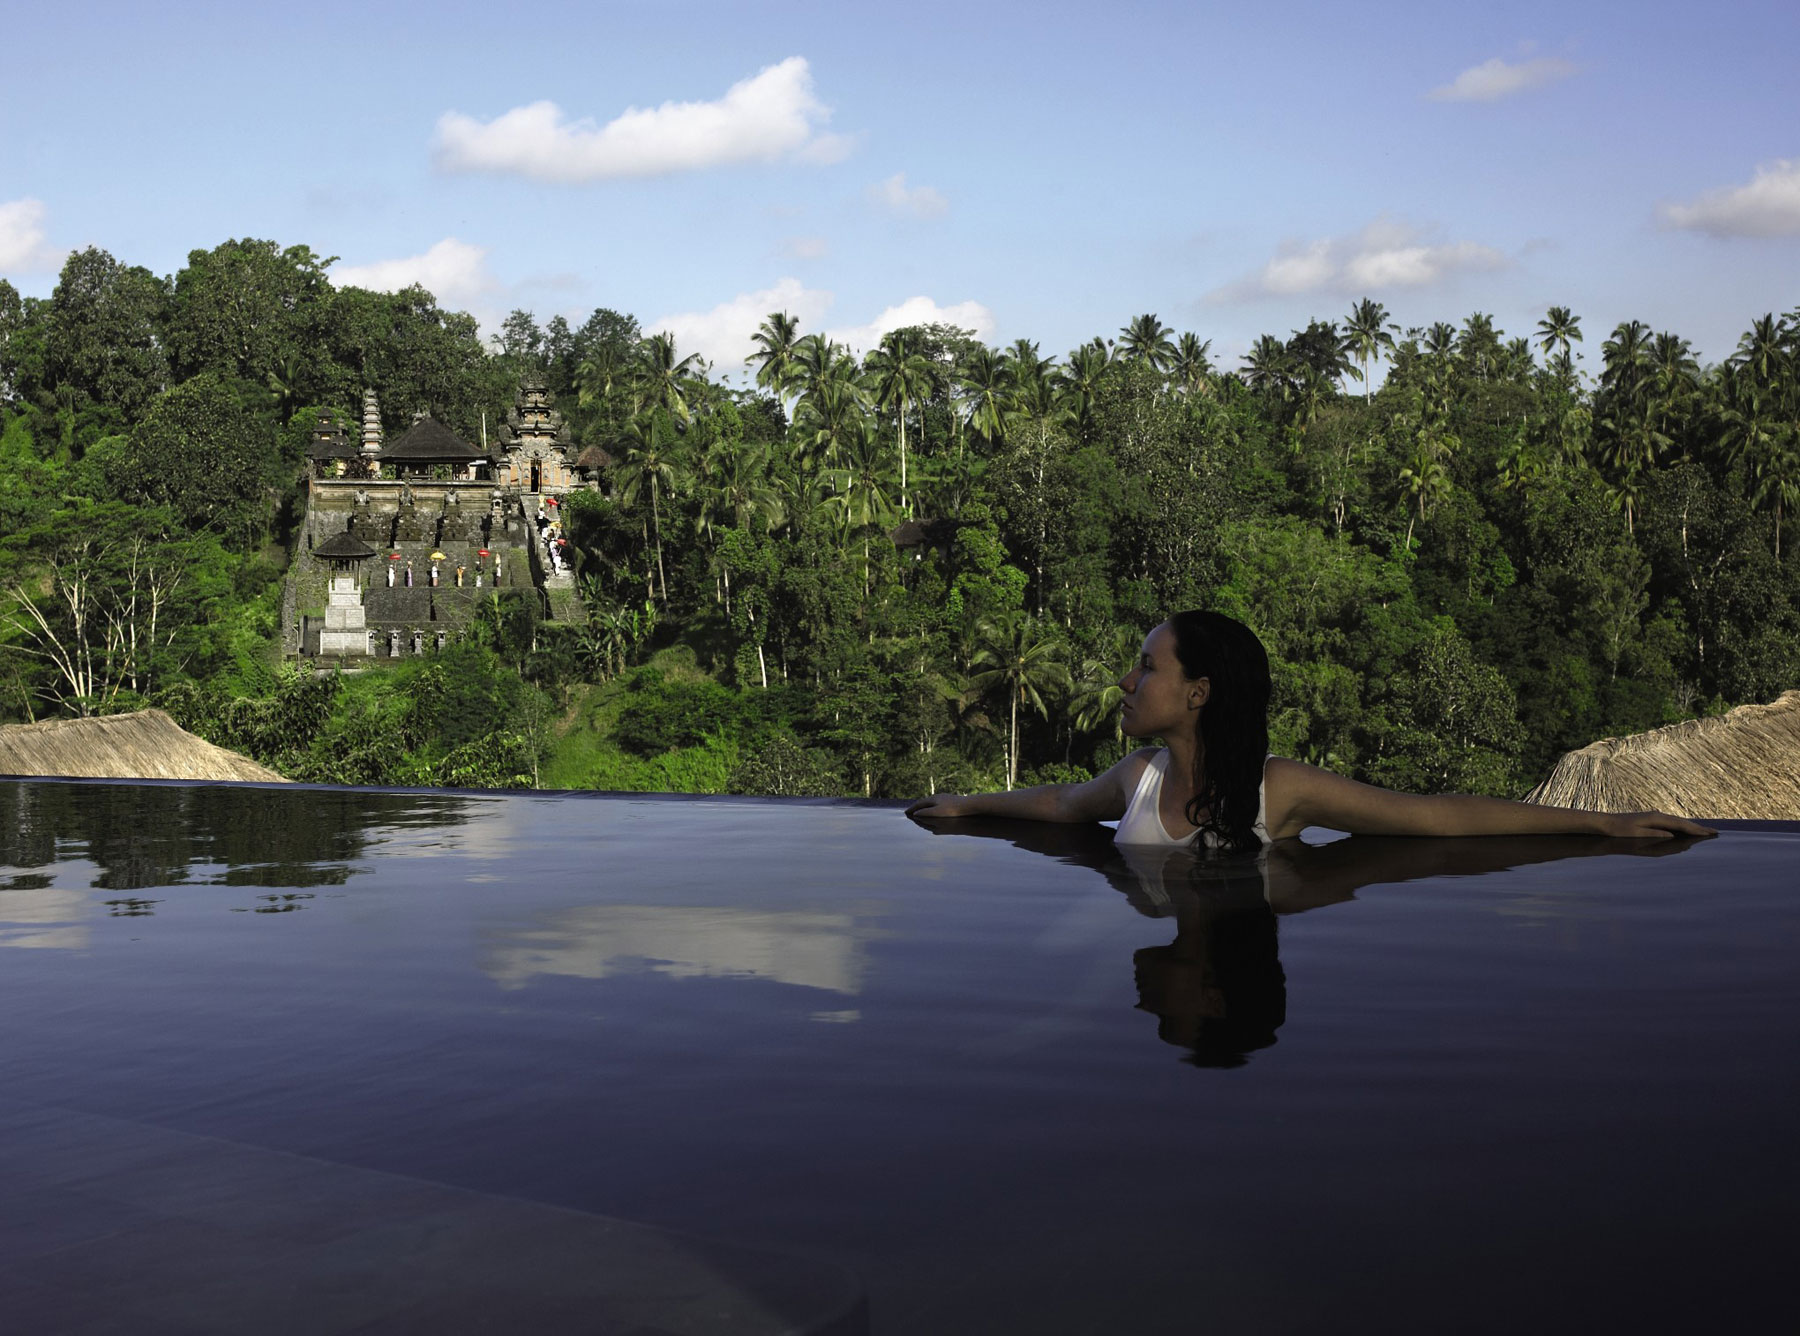 Hanging Infinity Pools In Bali At Ubud Hotel Resort Architecture